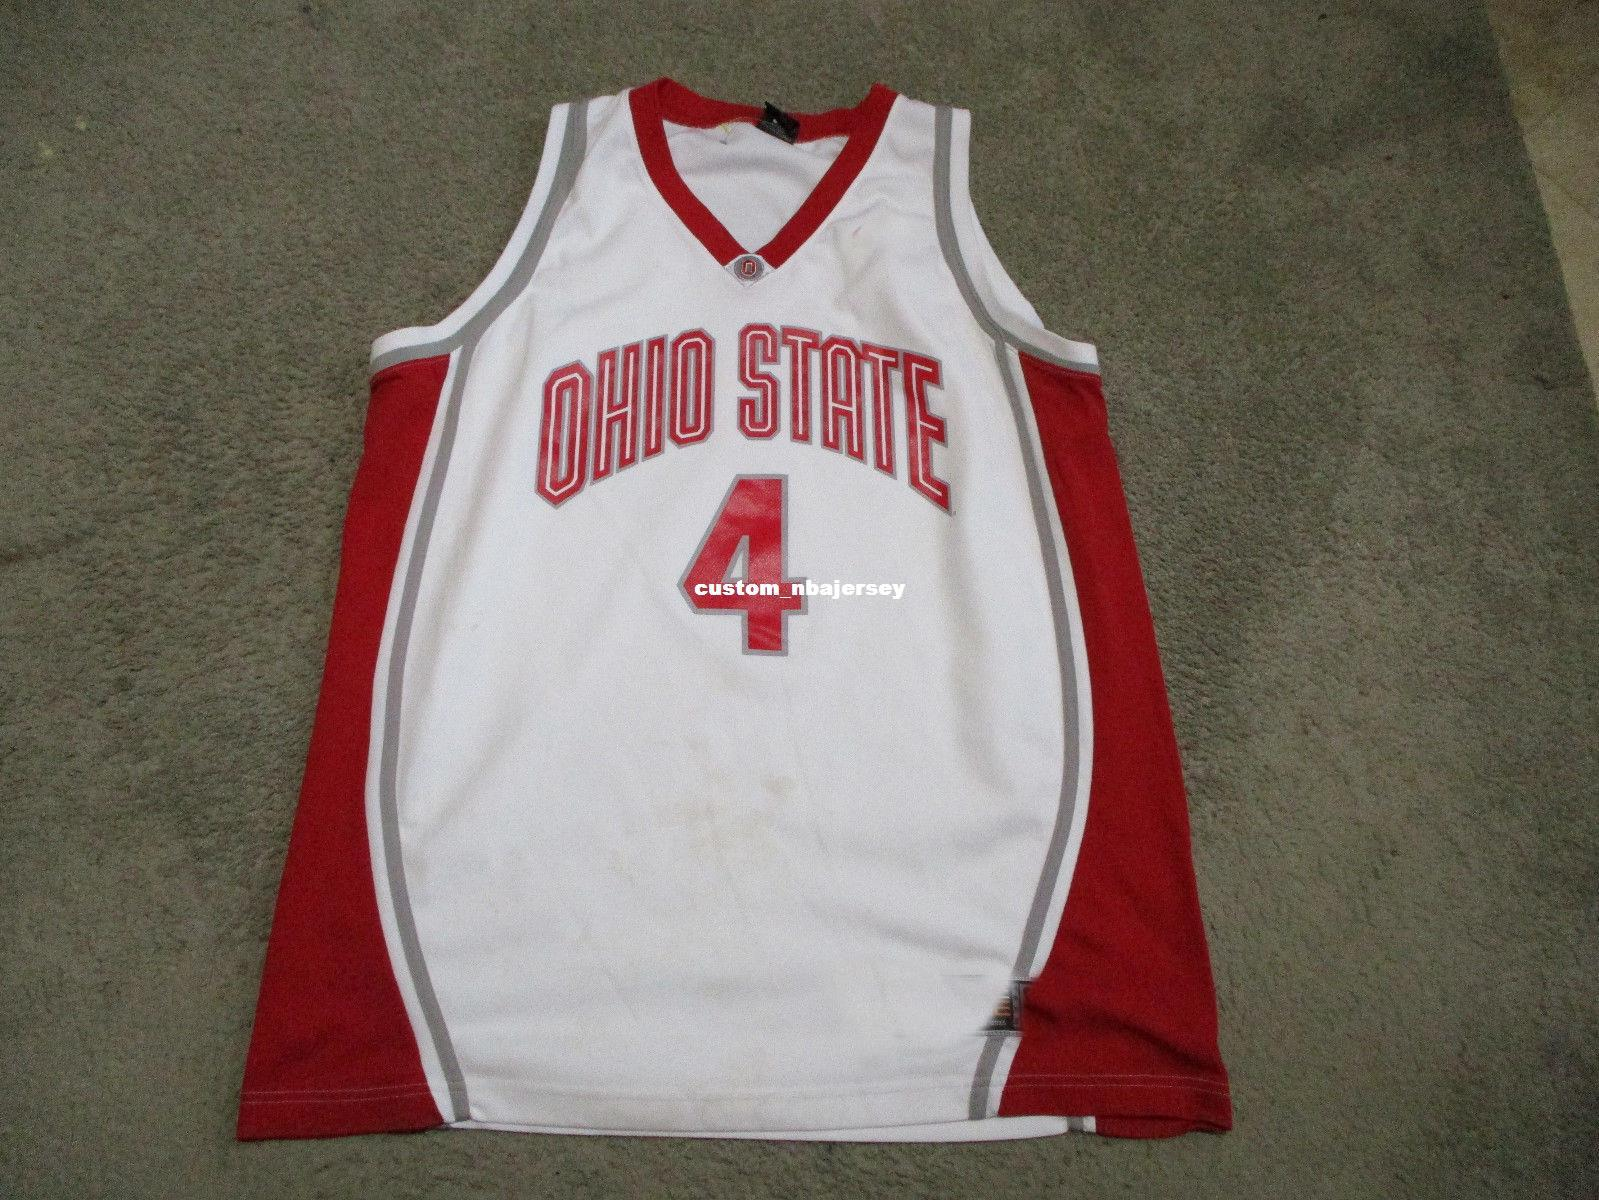 6c033f3900e 2019 Cheap Custom VINTAGE Ohio State Buckeyes Basketball Jersey OSU  Stitched Customize Any Number Name MEN WOMEN YOUTH XS 5XL From  Custom nbajersey